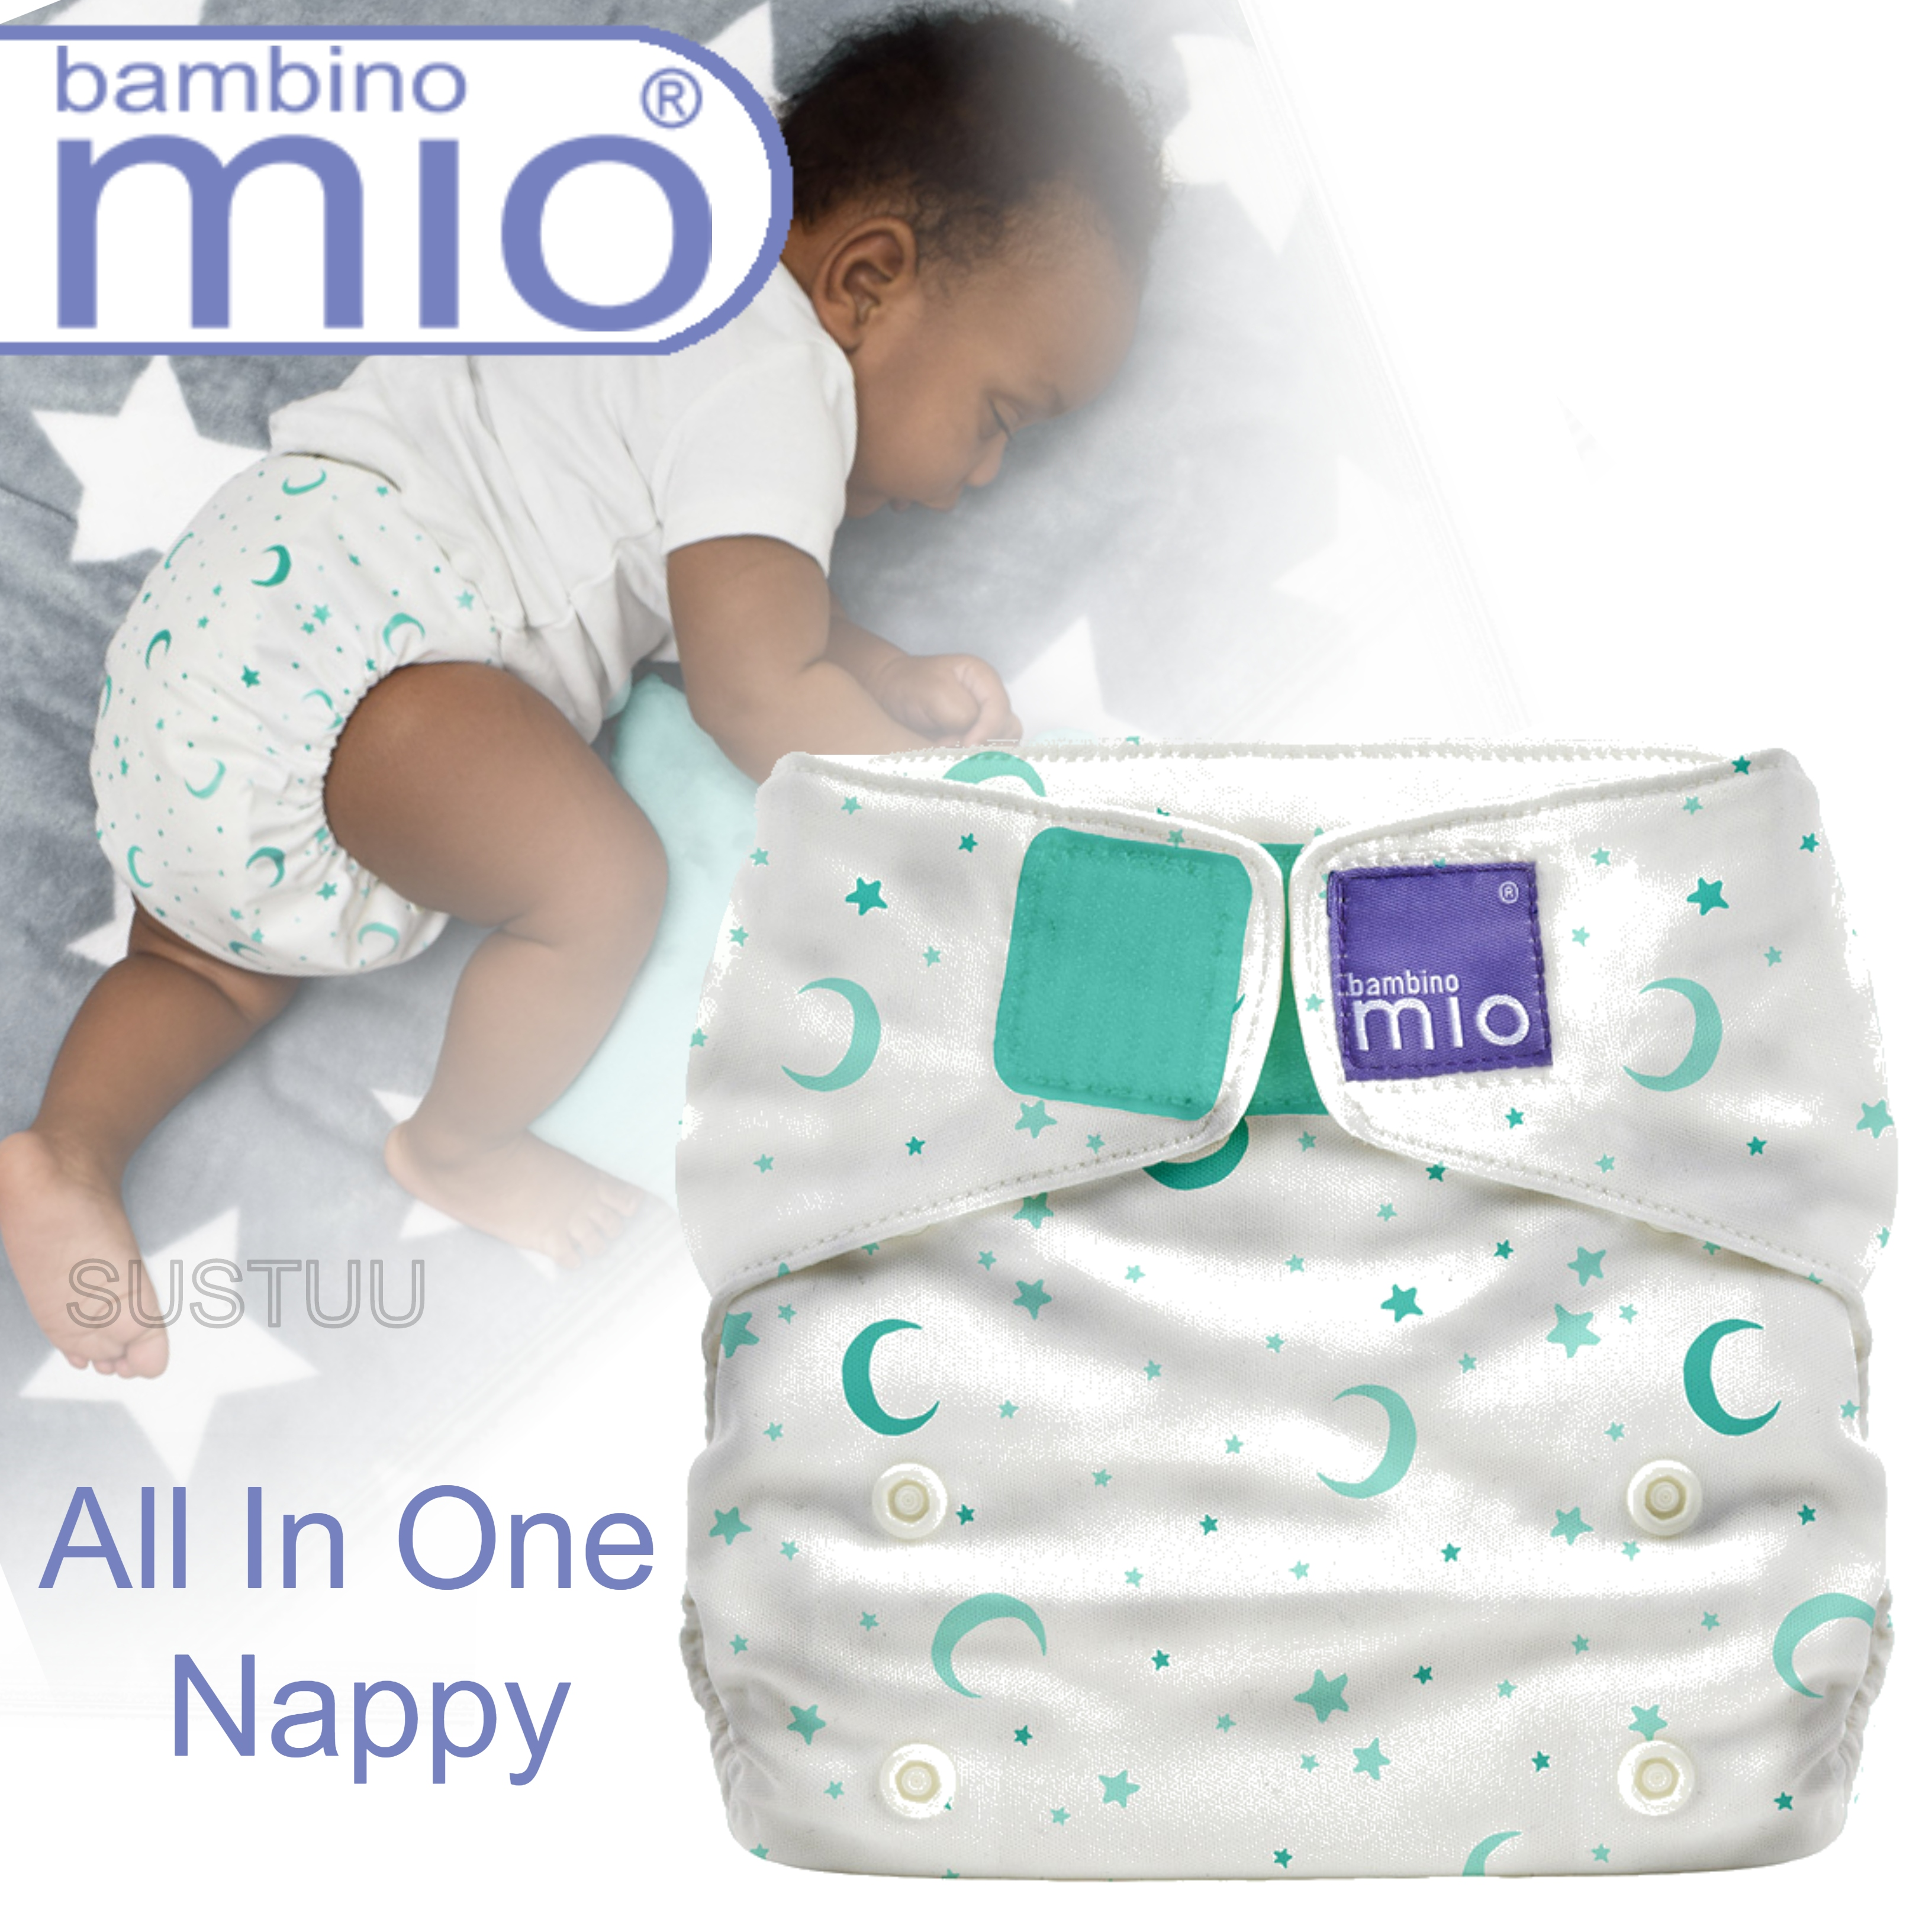 Bambino Mio Miosolo All In One Nappy|Polyester|For Baby No Moisturiser|Sweet Dreams